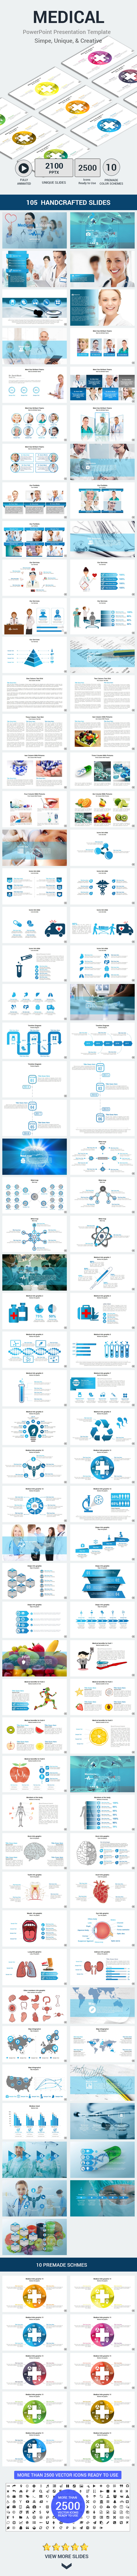 Medical PowerPoint Presentation Template - Business PowerPoint Templates